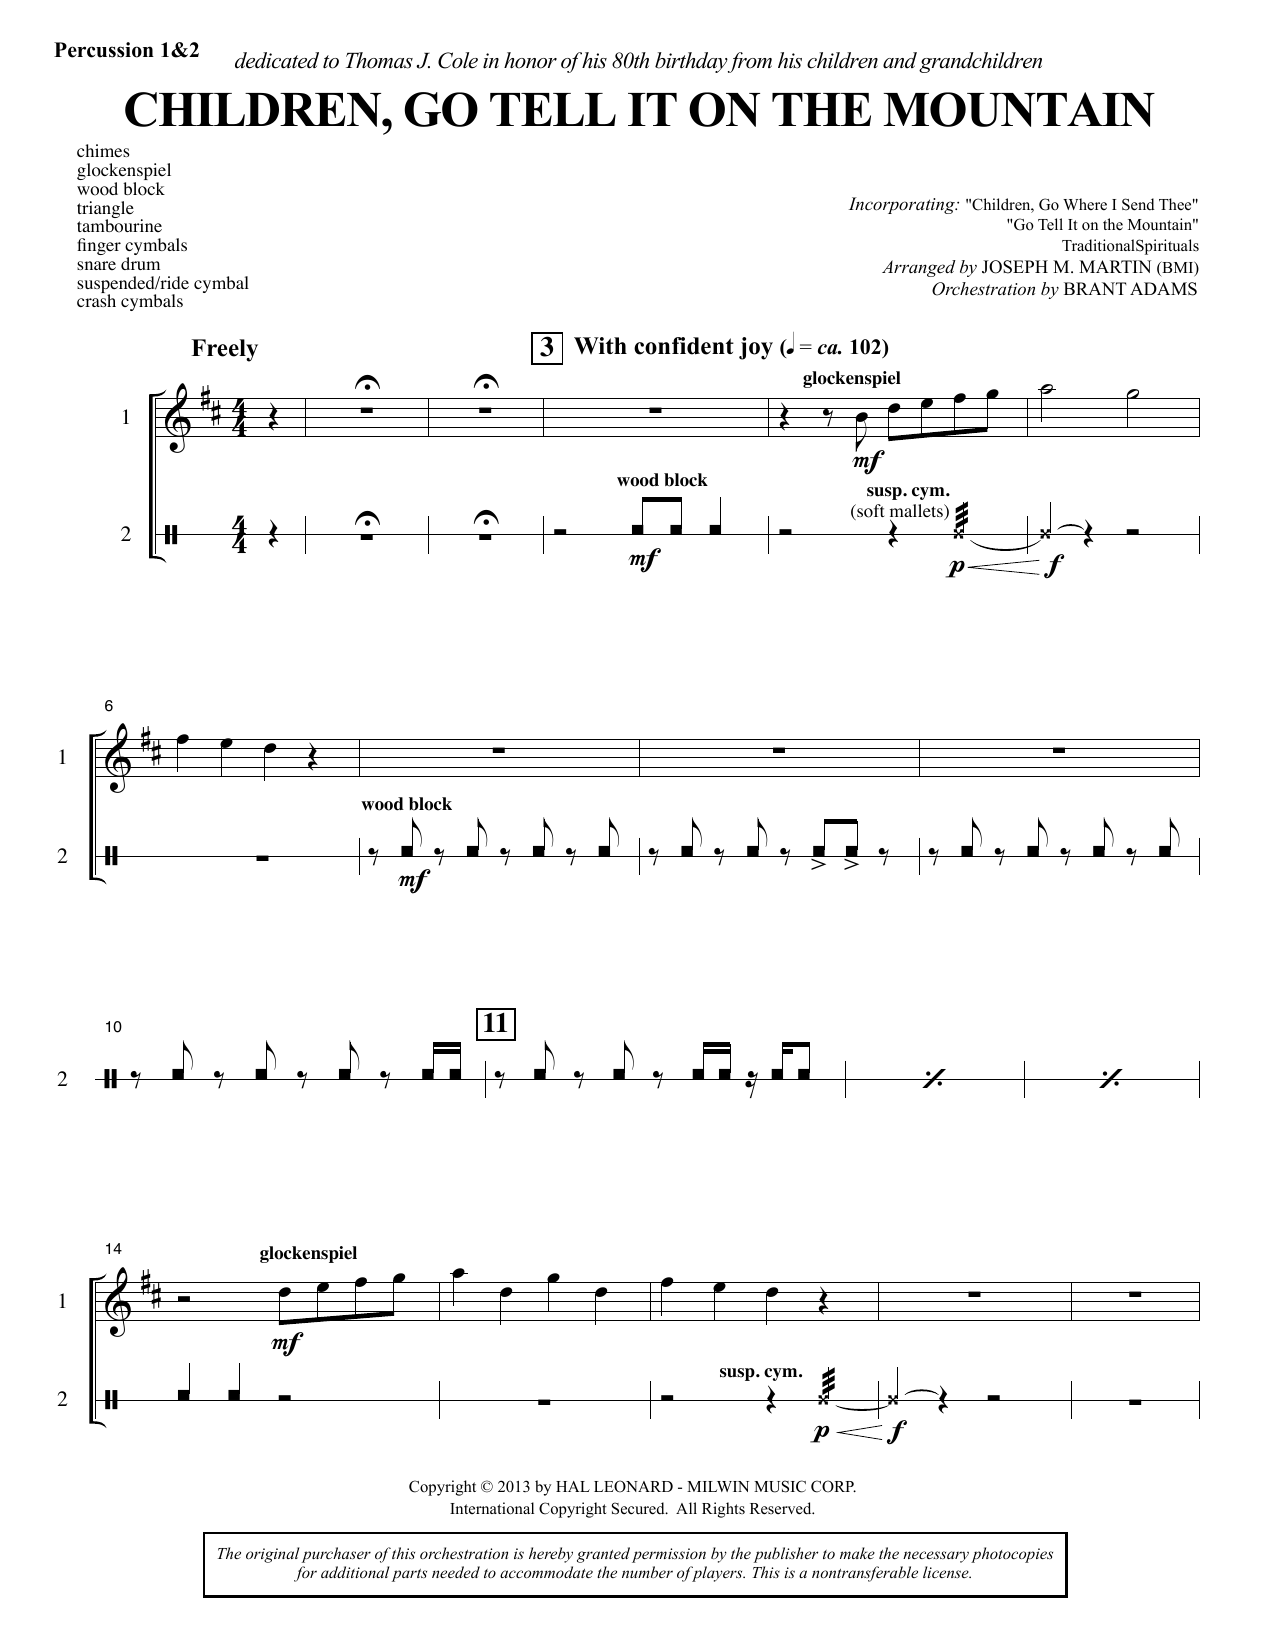 Joseph M. Martin Children, Go Tell It on the Mountain - Percussion 1 & 2 sheet music notes and chords. Download Printable PDF.